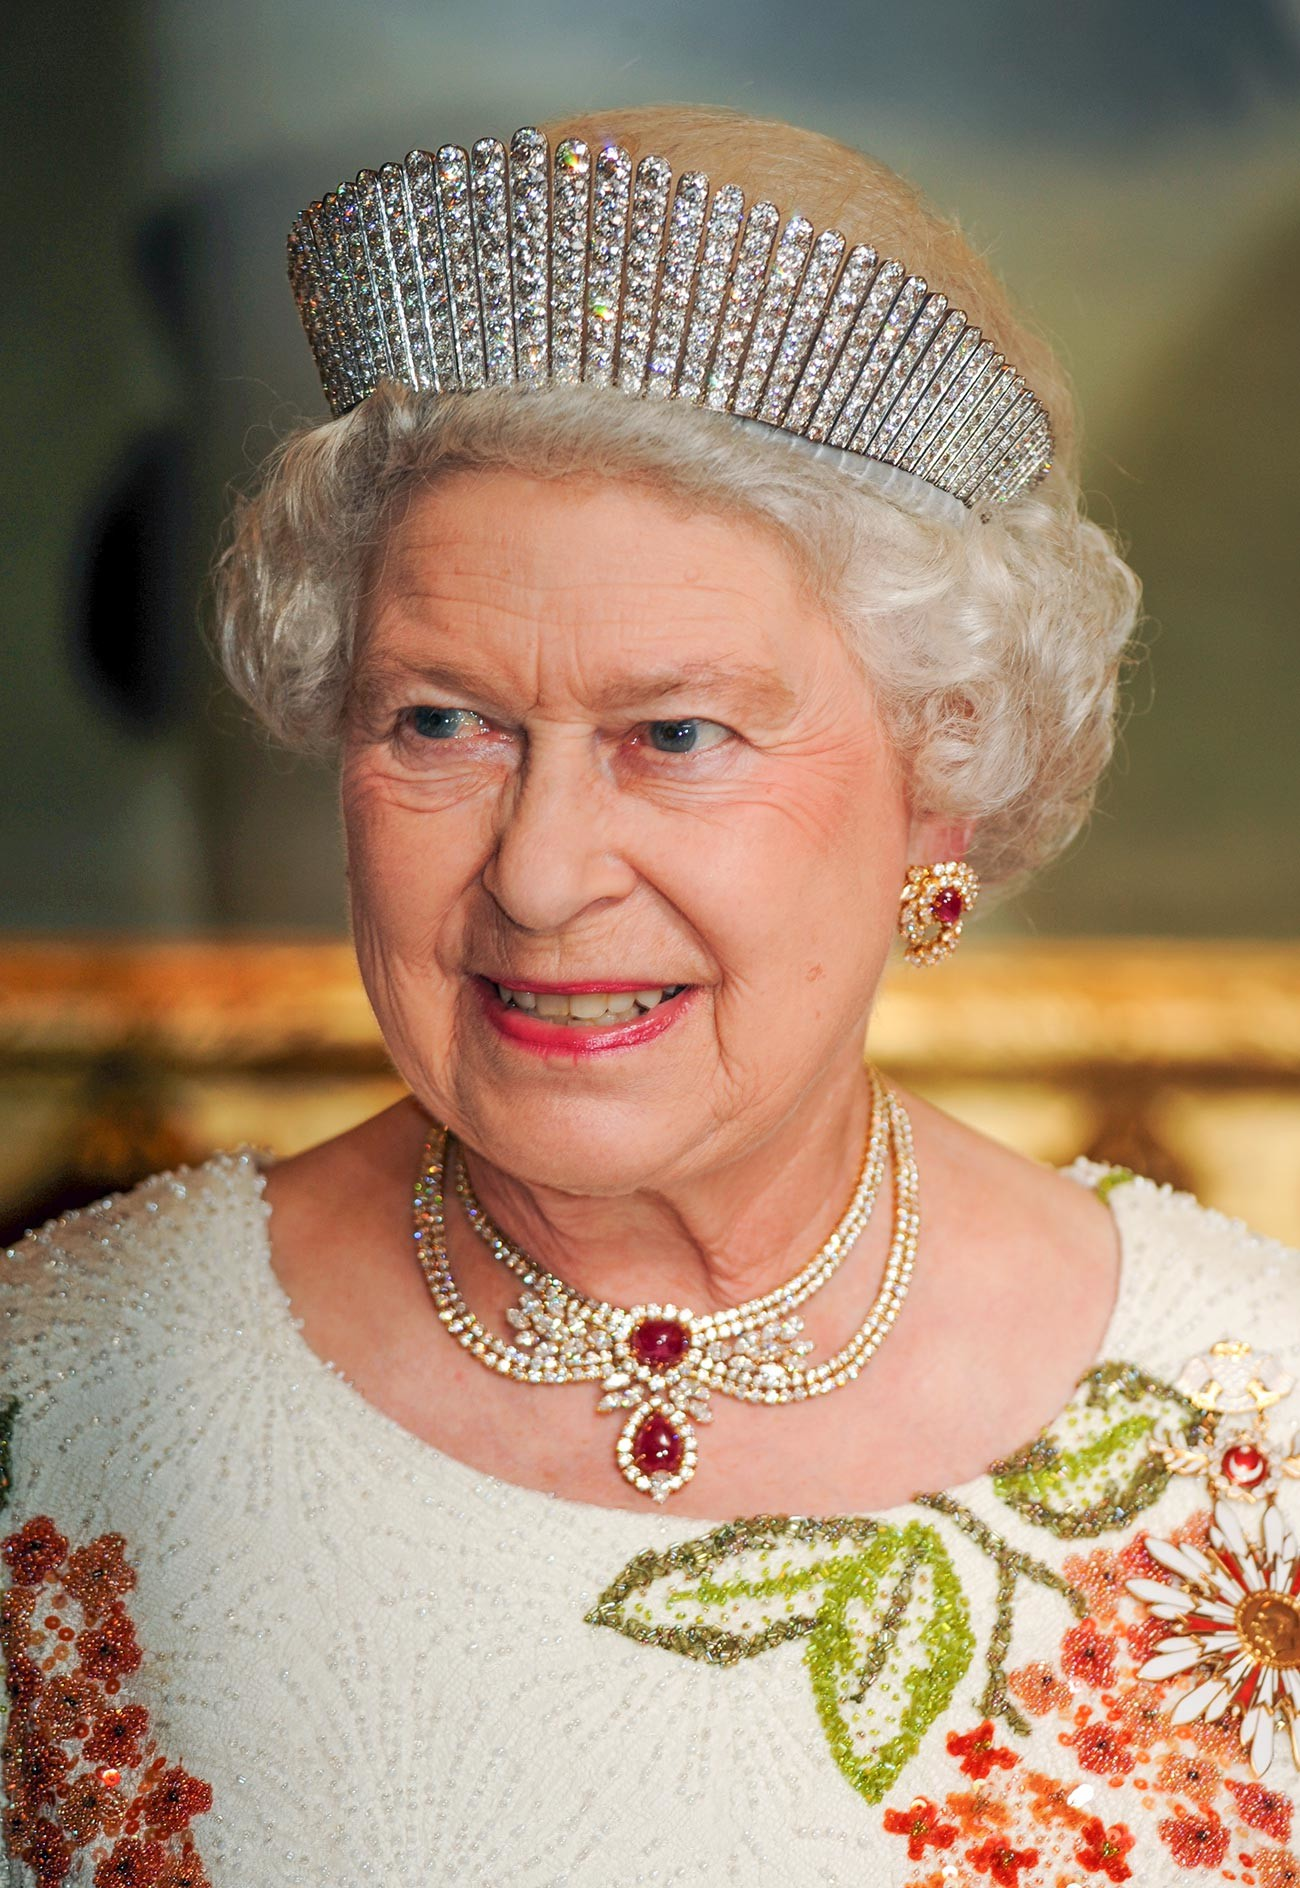 Queen Elizabeth ll attends a State Banquet on the first day of a State Visit to Turkey on May 13, 2008 in Ankara.